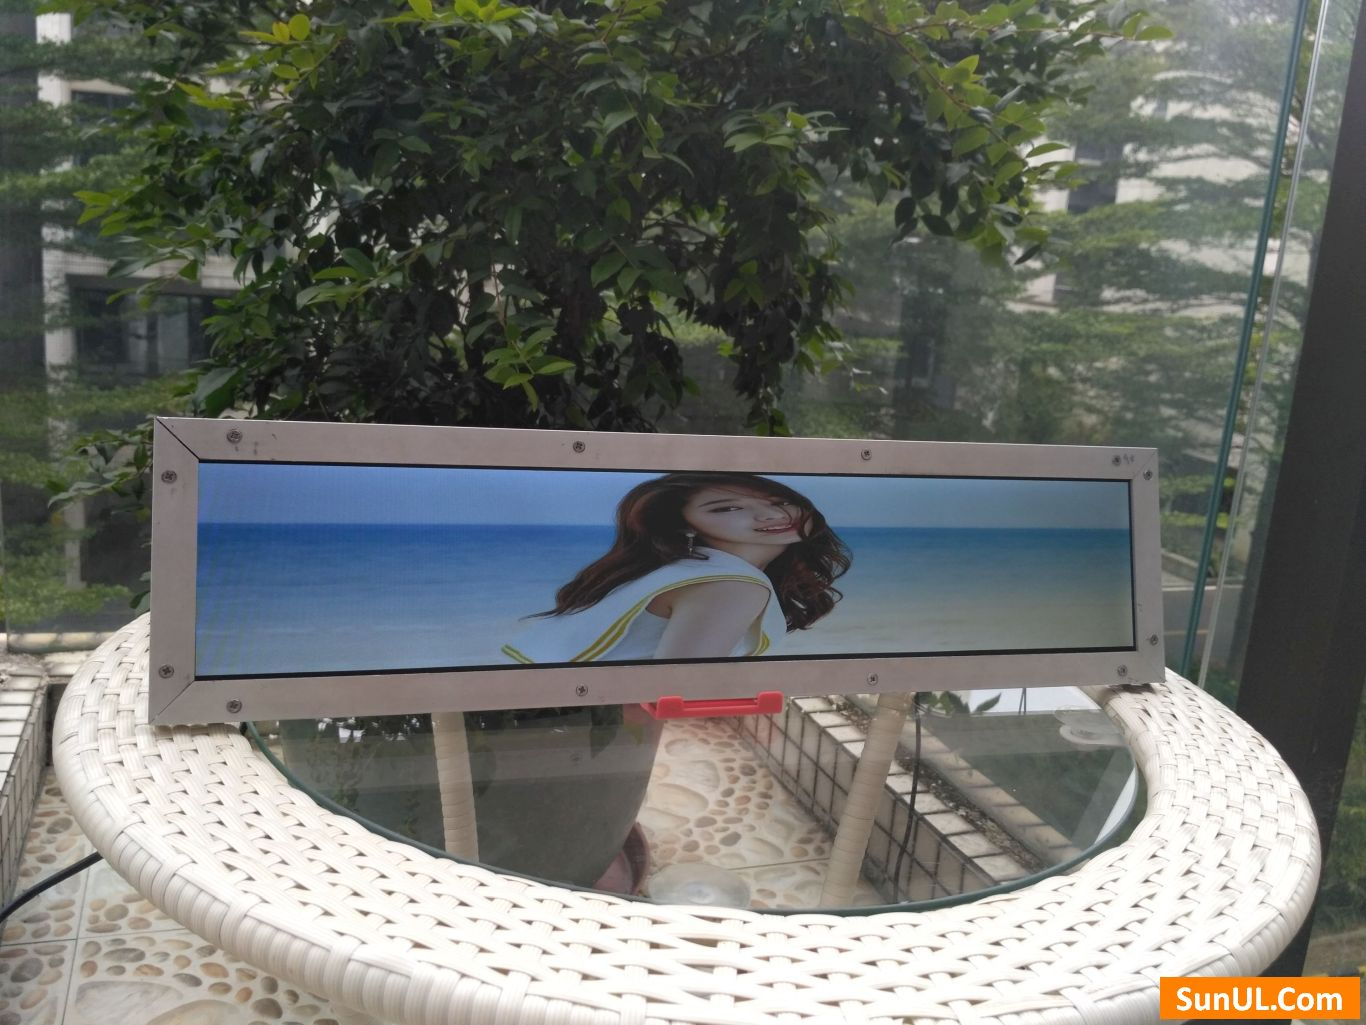 24.5 inch stretched LCD display